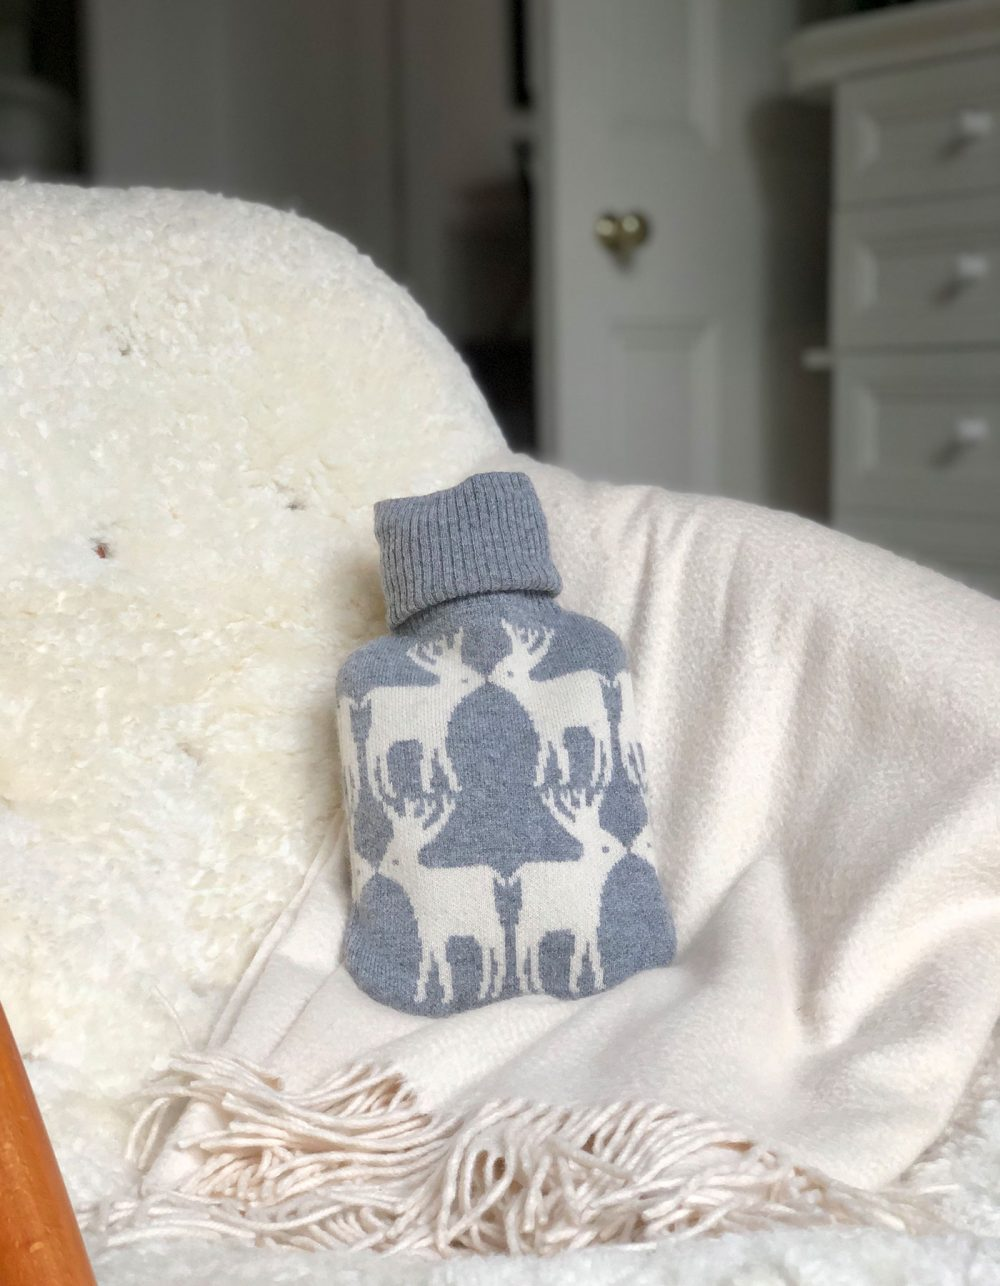 Cashmere hot water bottle on a chair, part of the malin darlin range of designer cashmere gifts.